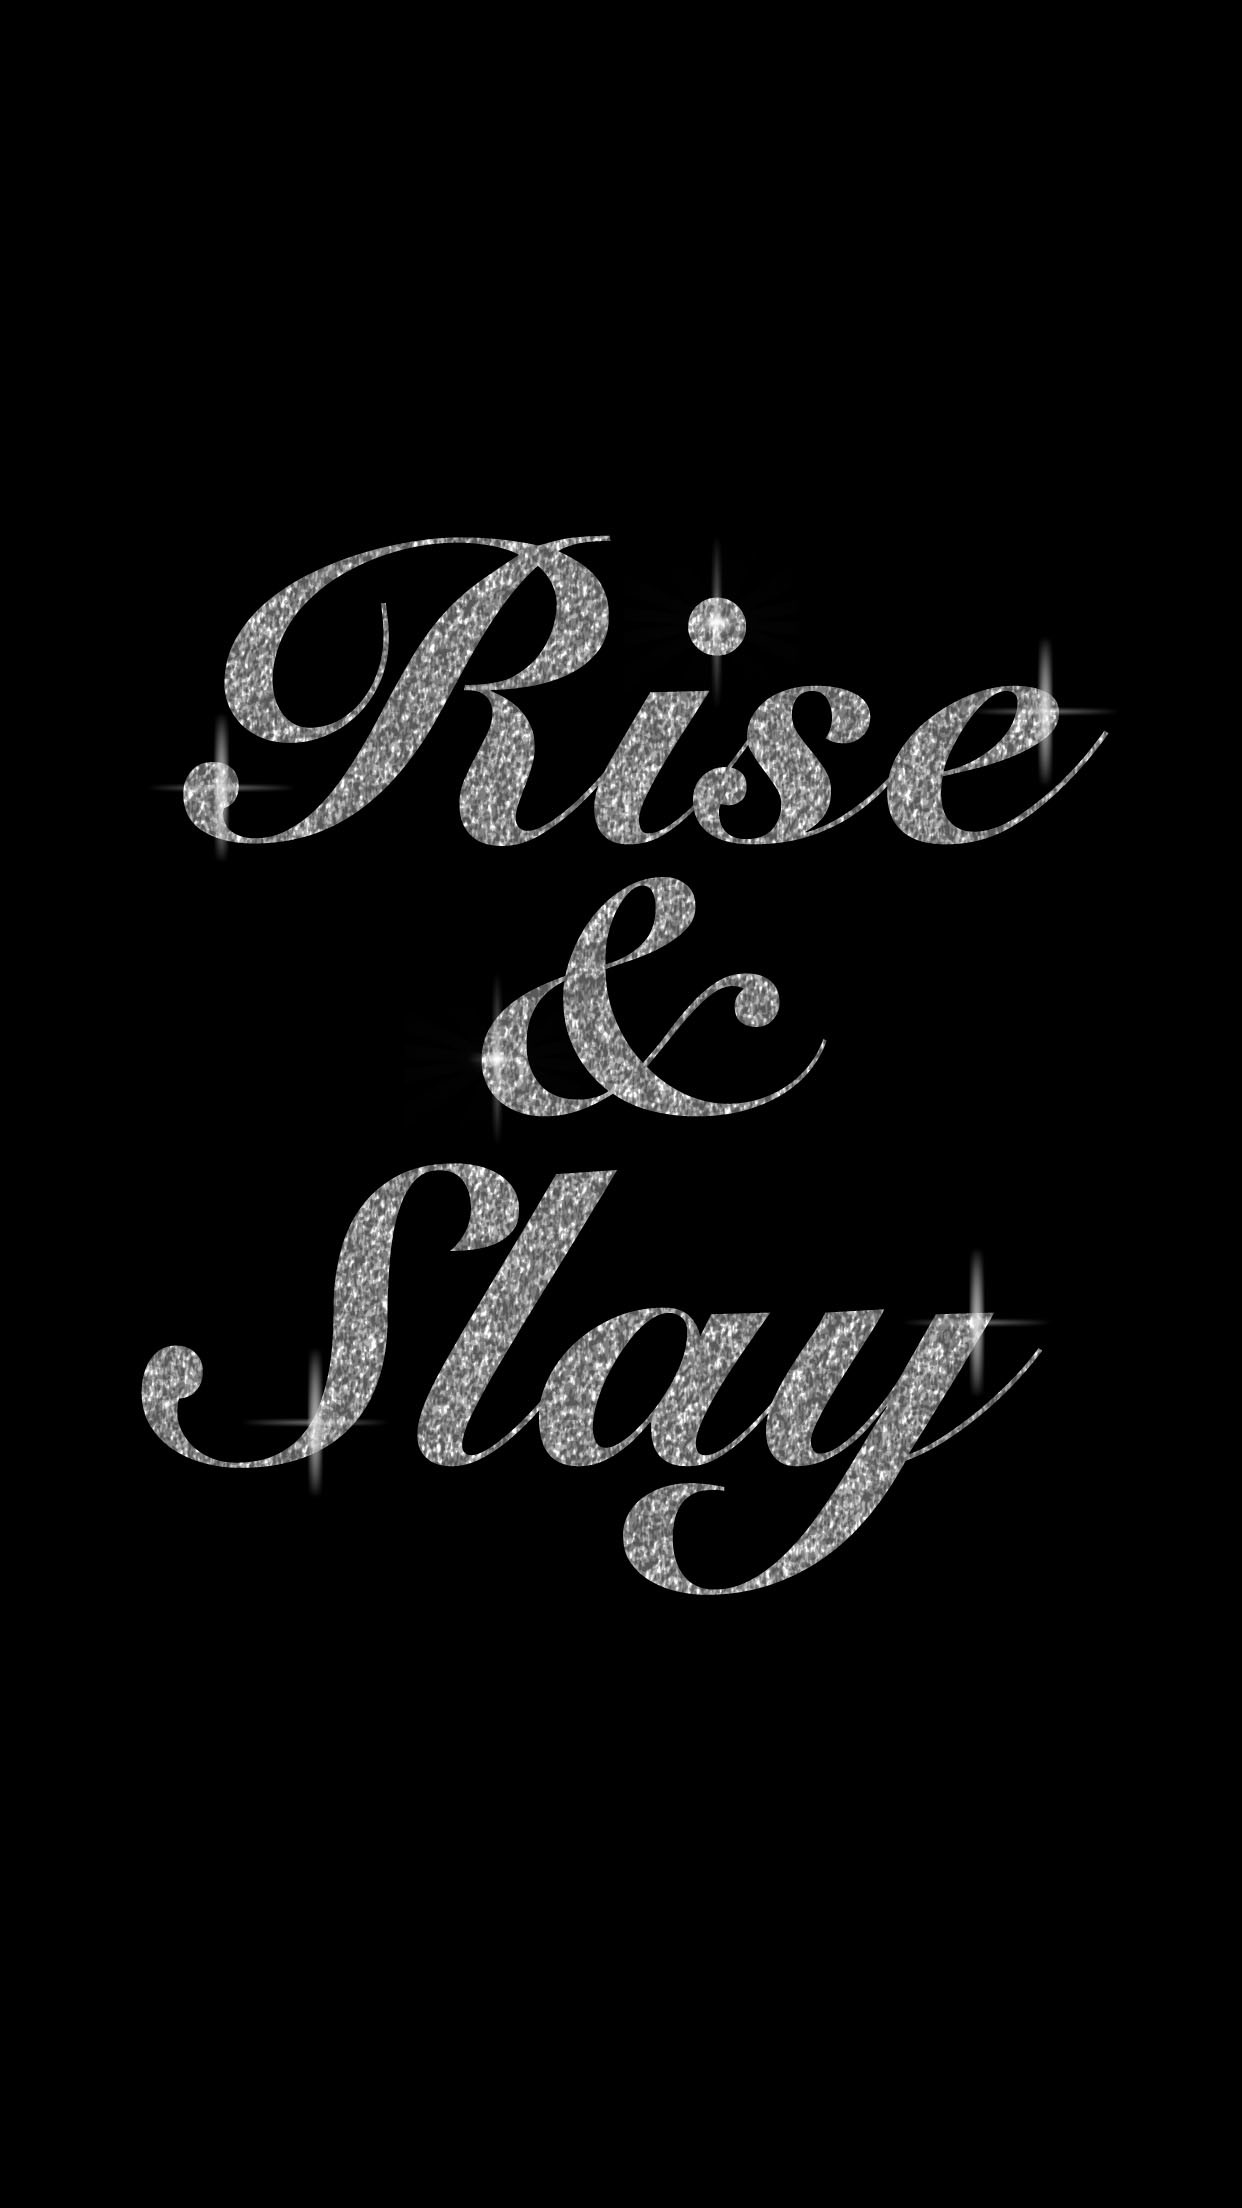 Rise and SLAY everyday! Motivation PicturesWomen's FitnessFitness Motivation